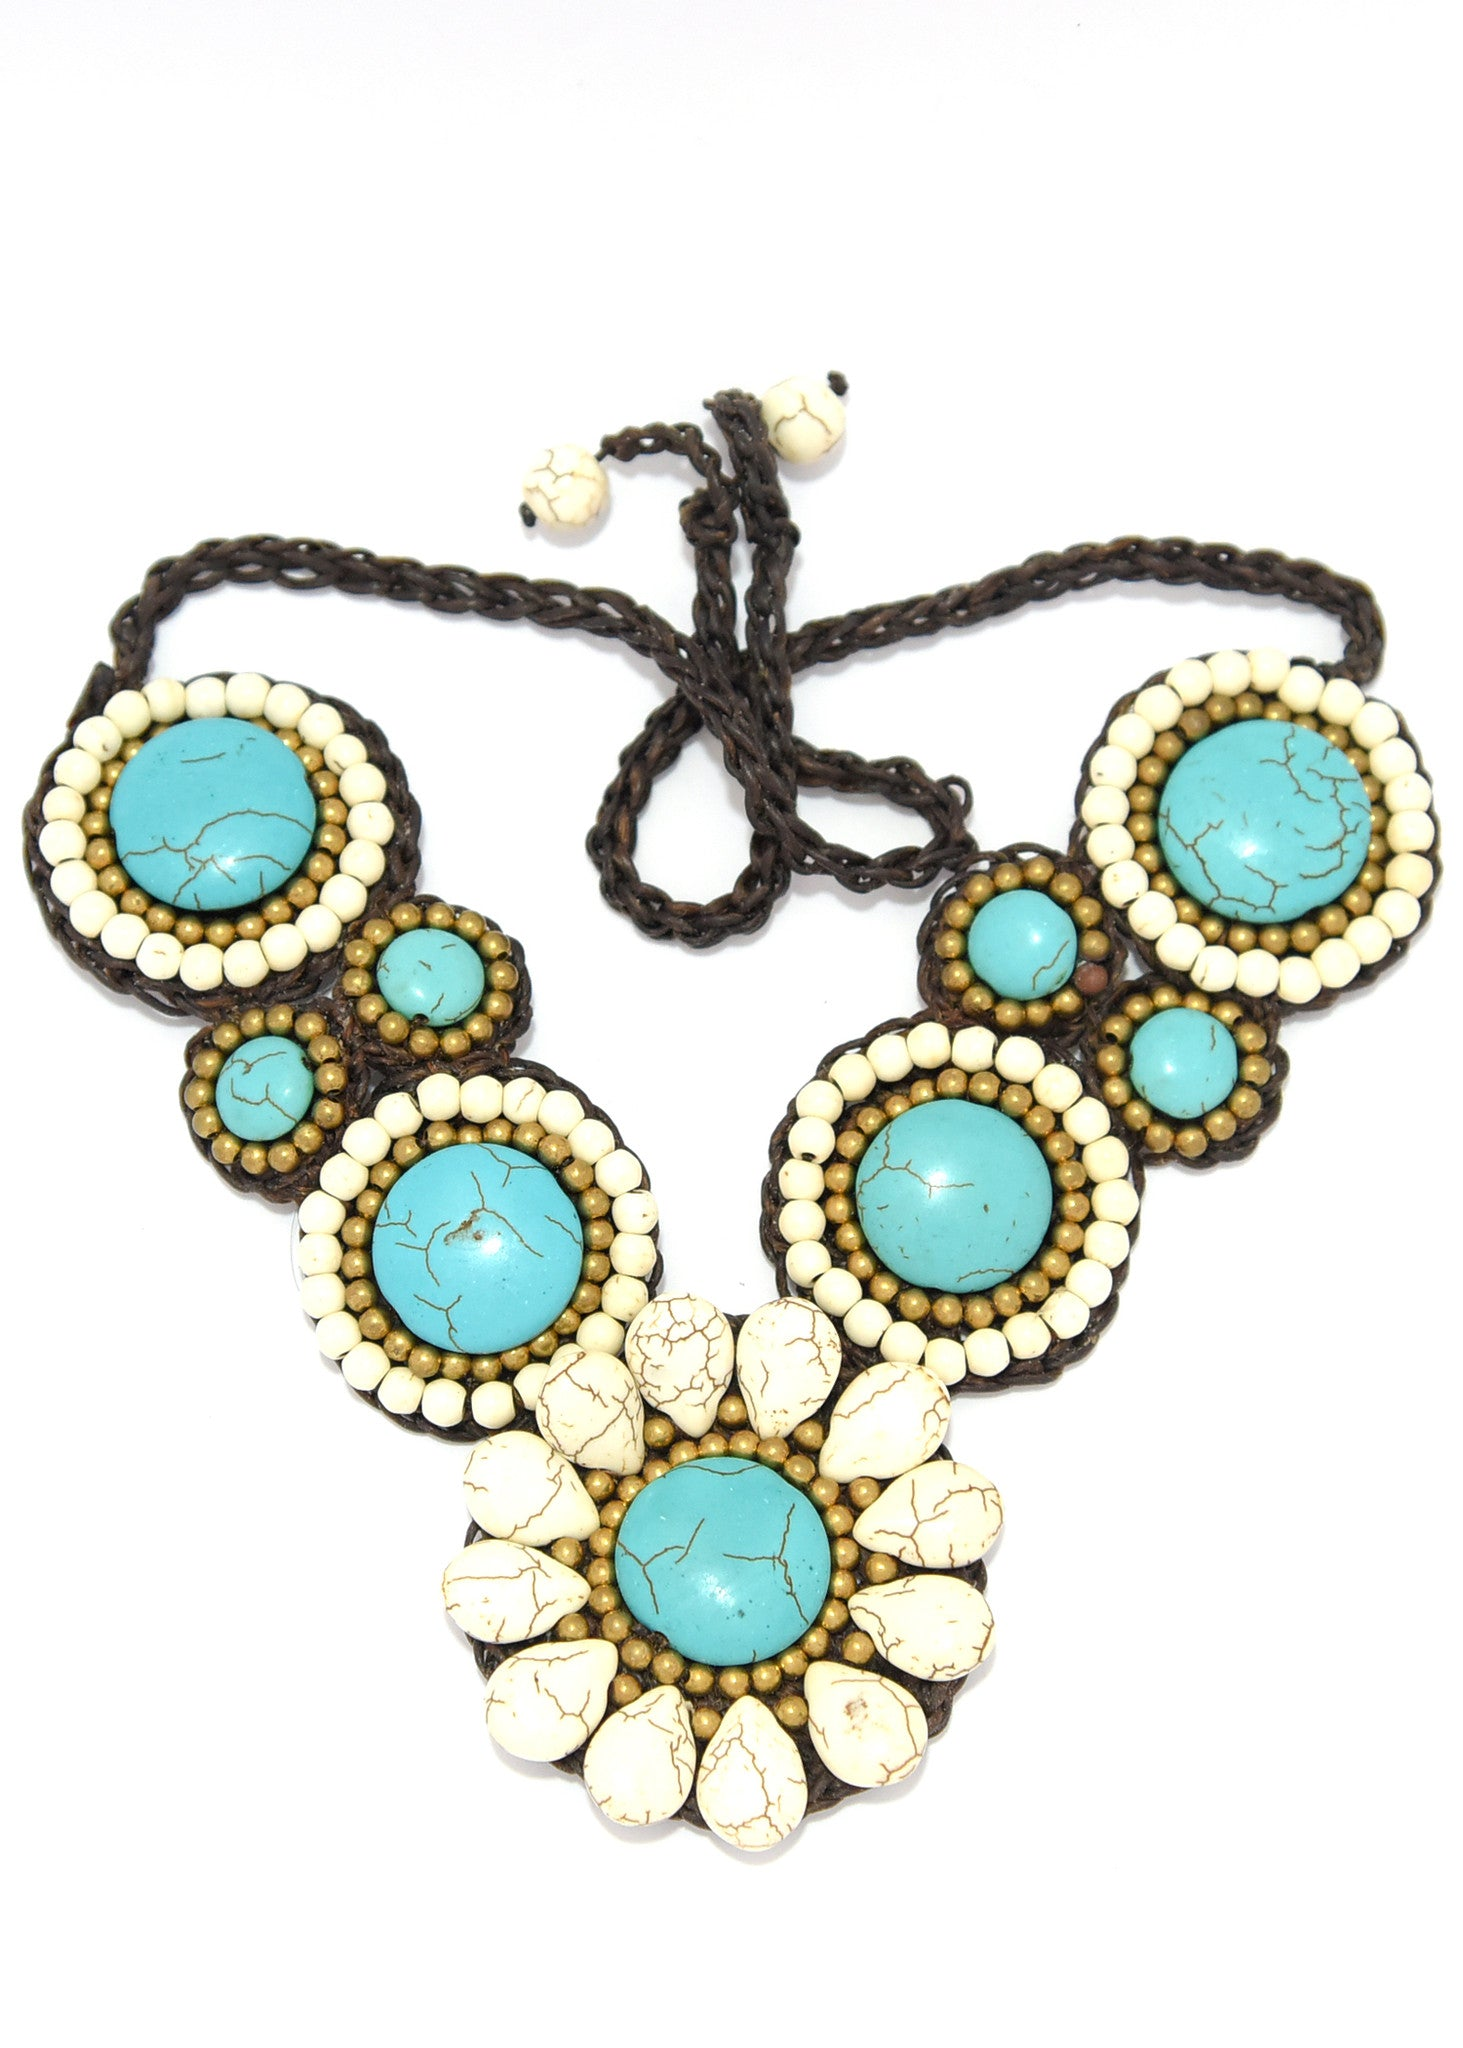 gold with white stones precious stone foil glass murano product semi aqua necklace multi jewellery